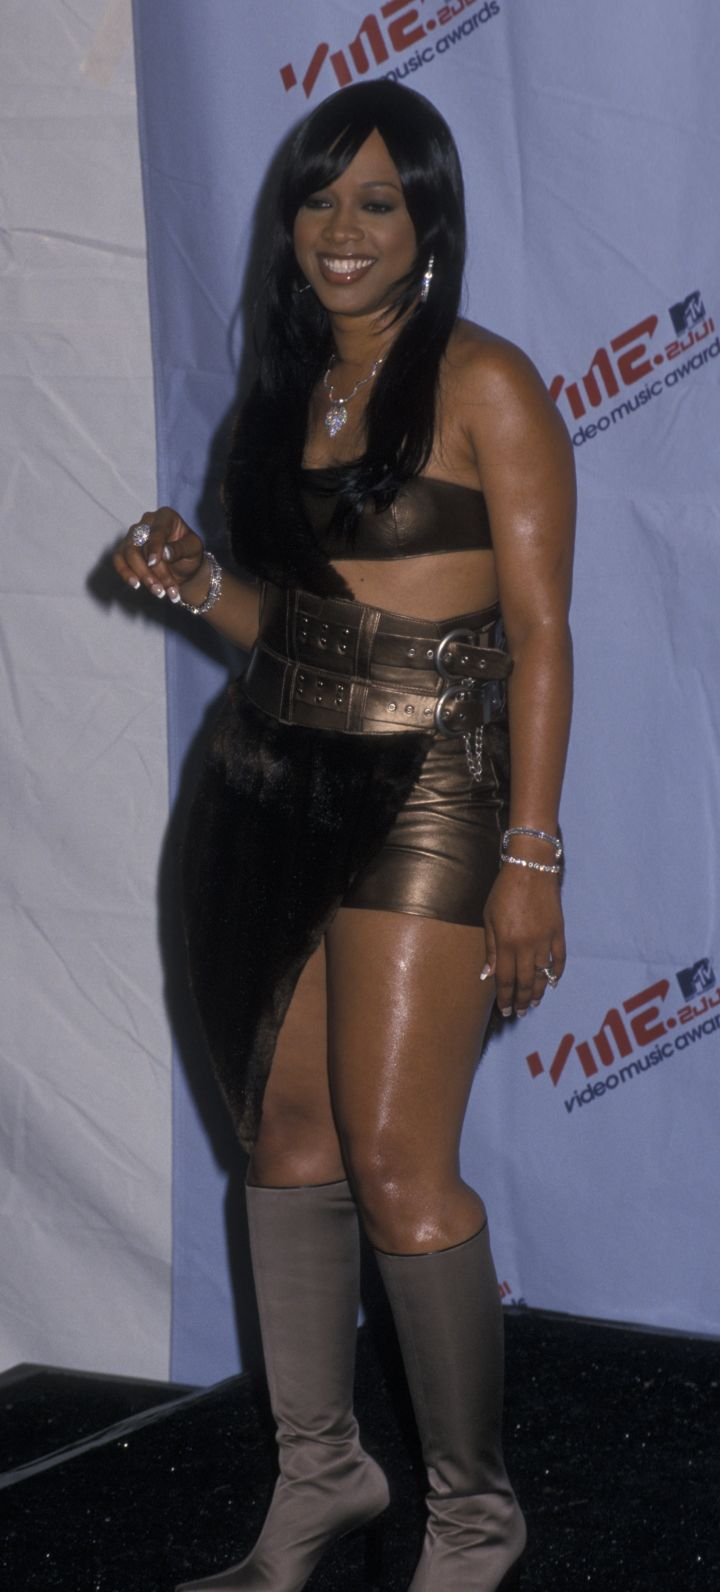 TRINA AT THE 18TH ANNUAL MTV VIDEO MUSIC AWARDS, 2001